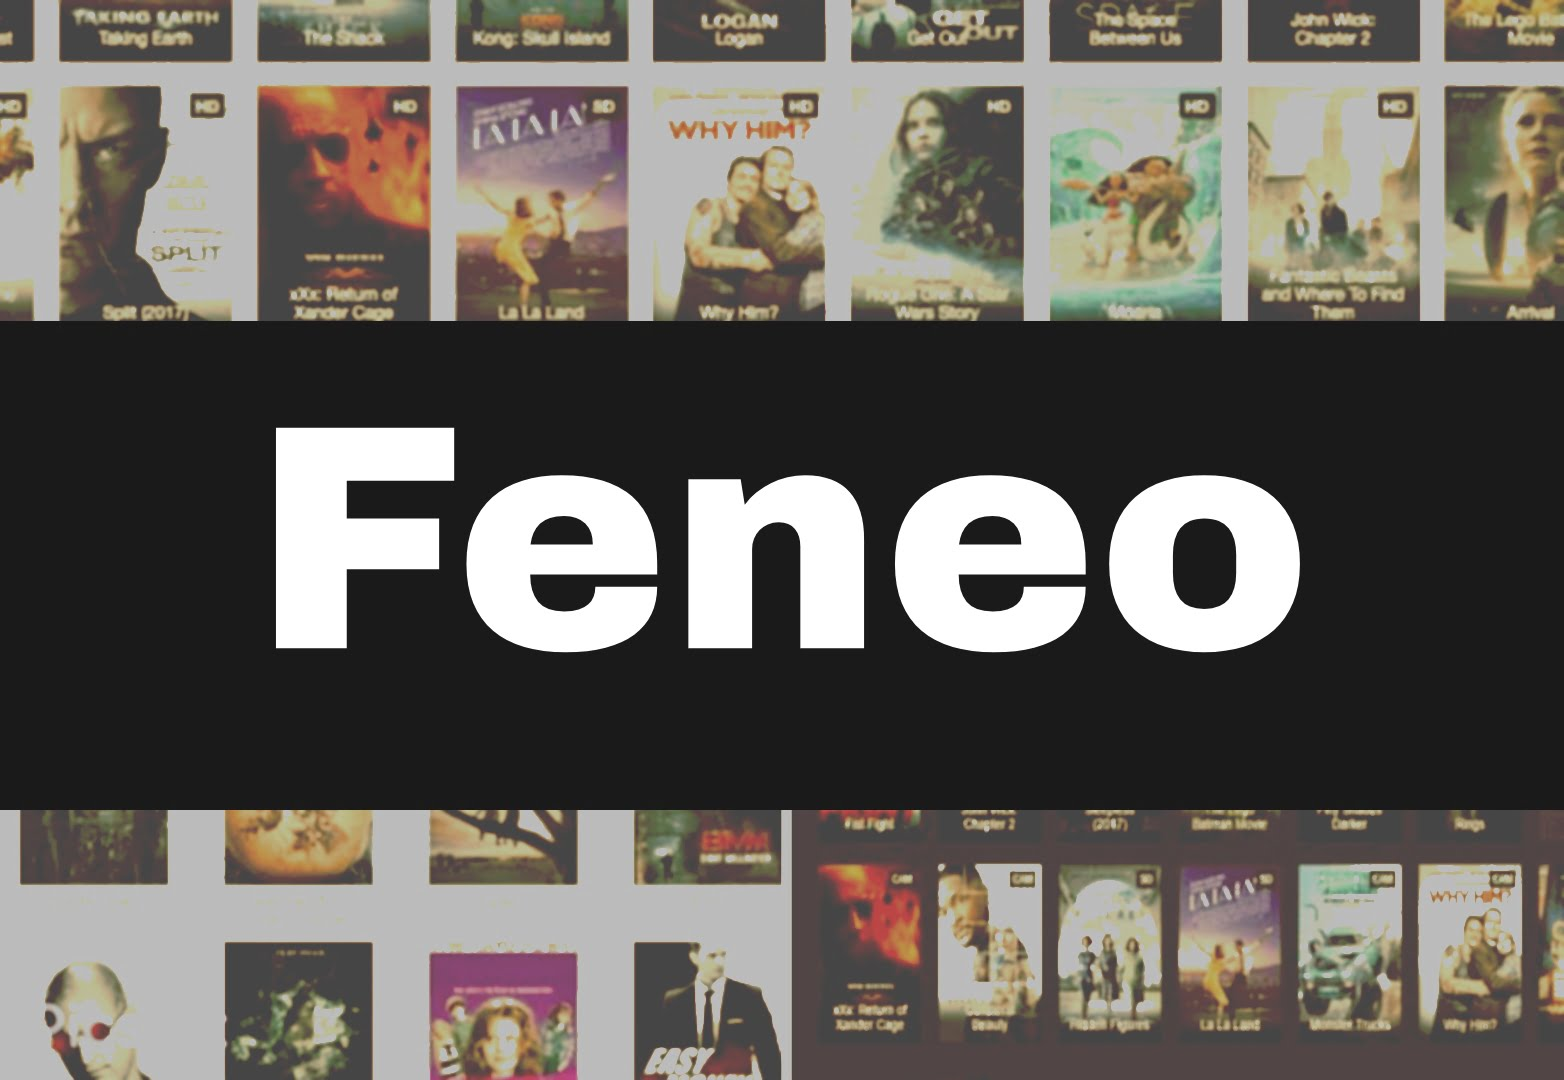 Feneo Movies 2021 – Movies & Streaming Website for free